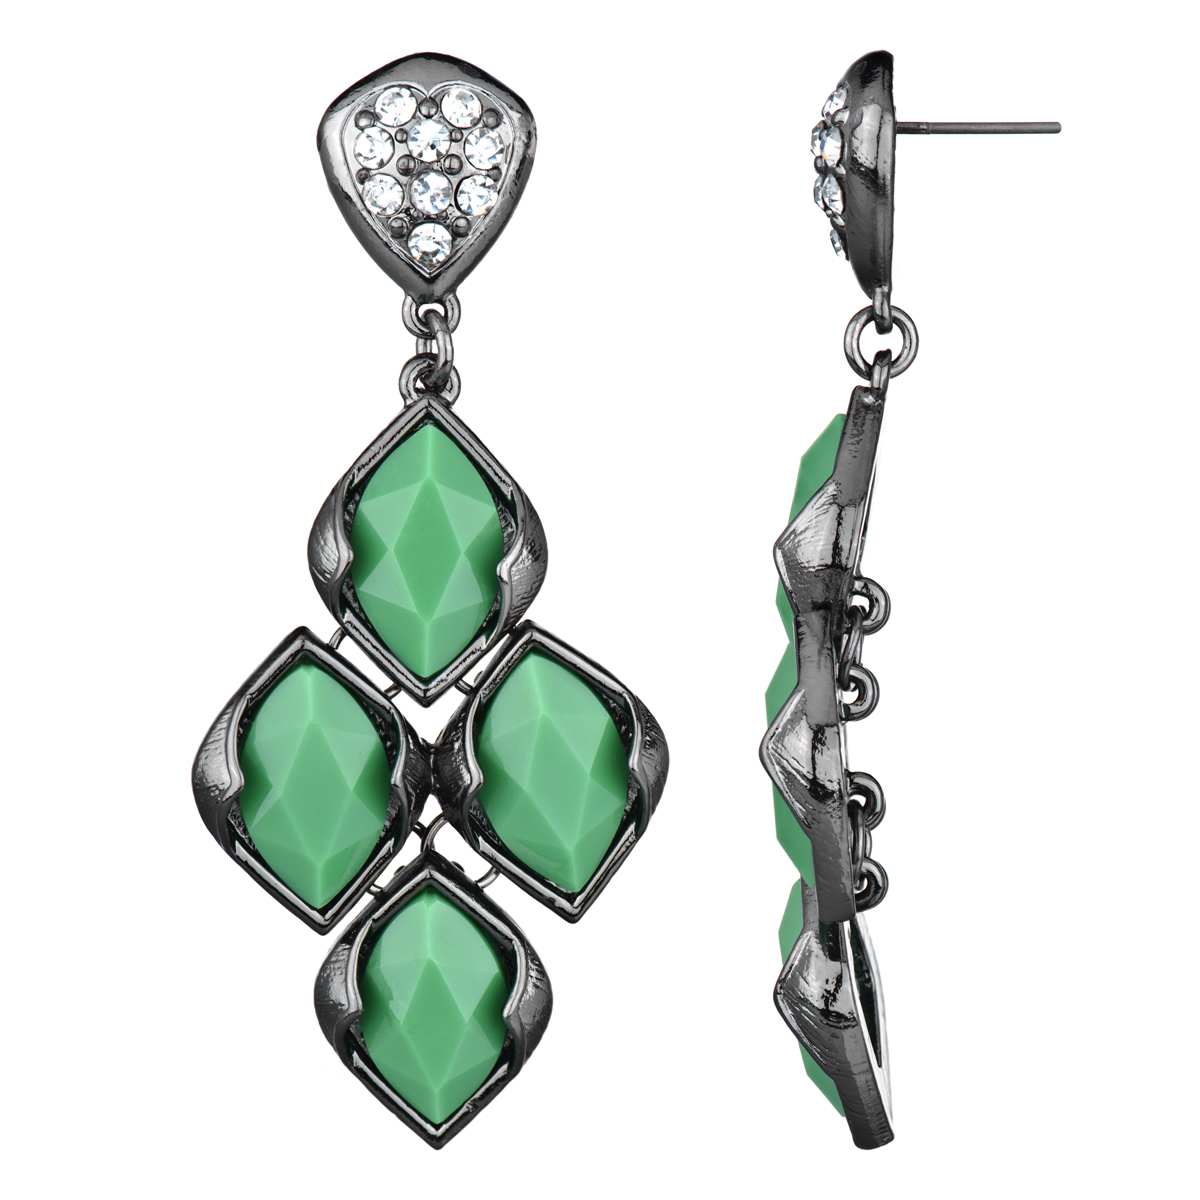 Drita's Gunmetal Green Chandelier Earrings